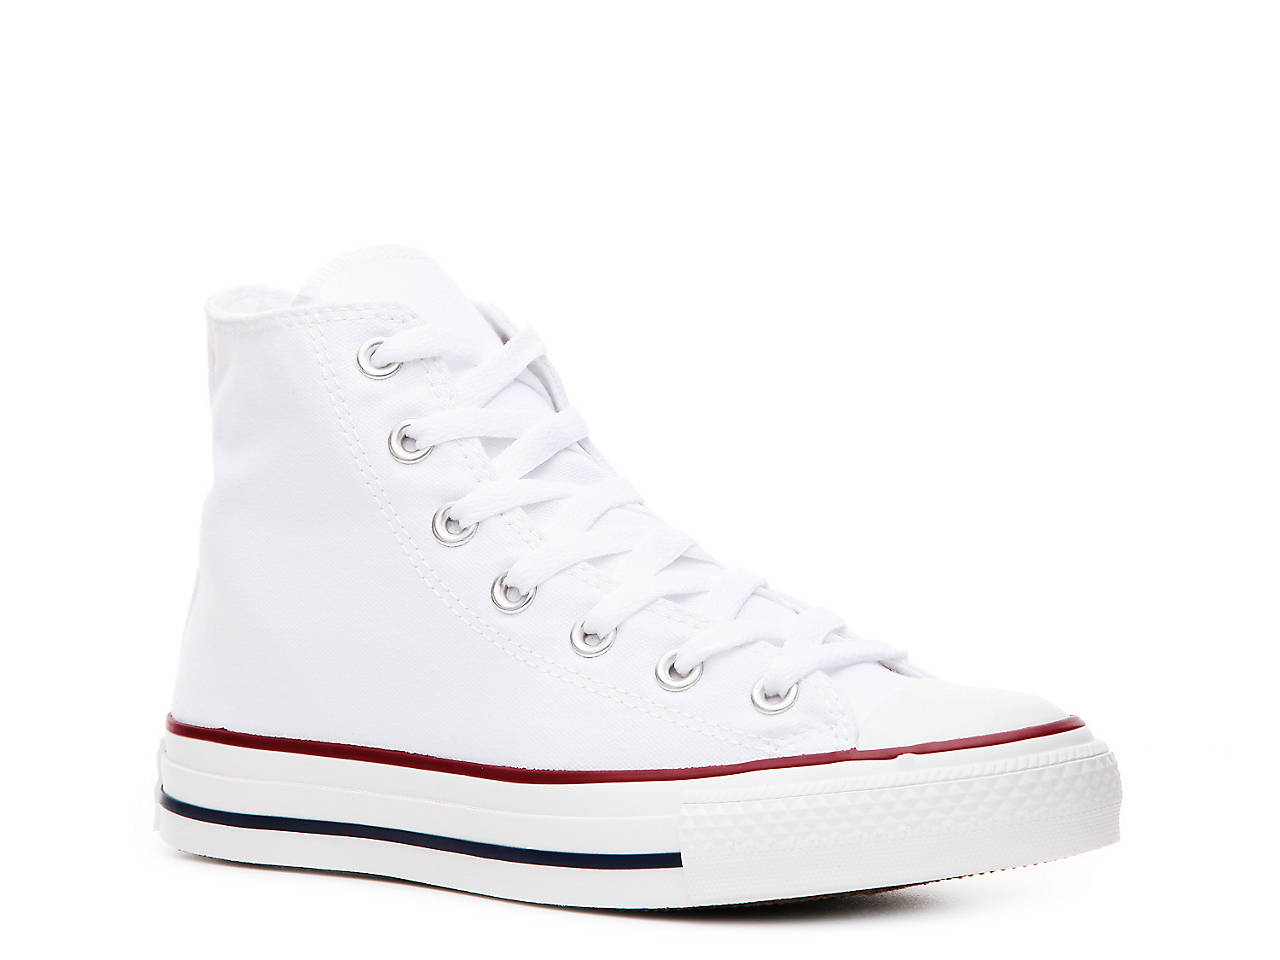 Chuck Taylor All Star HighTop Sneaker  Women's